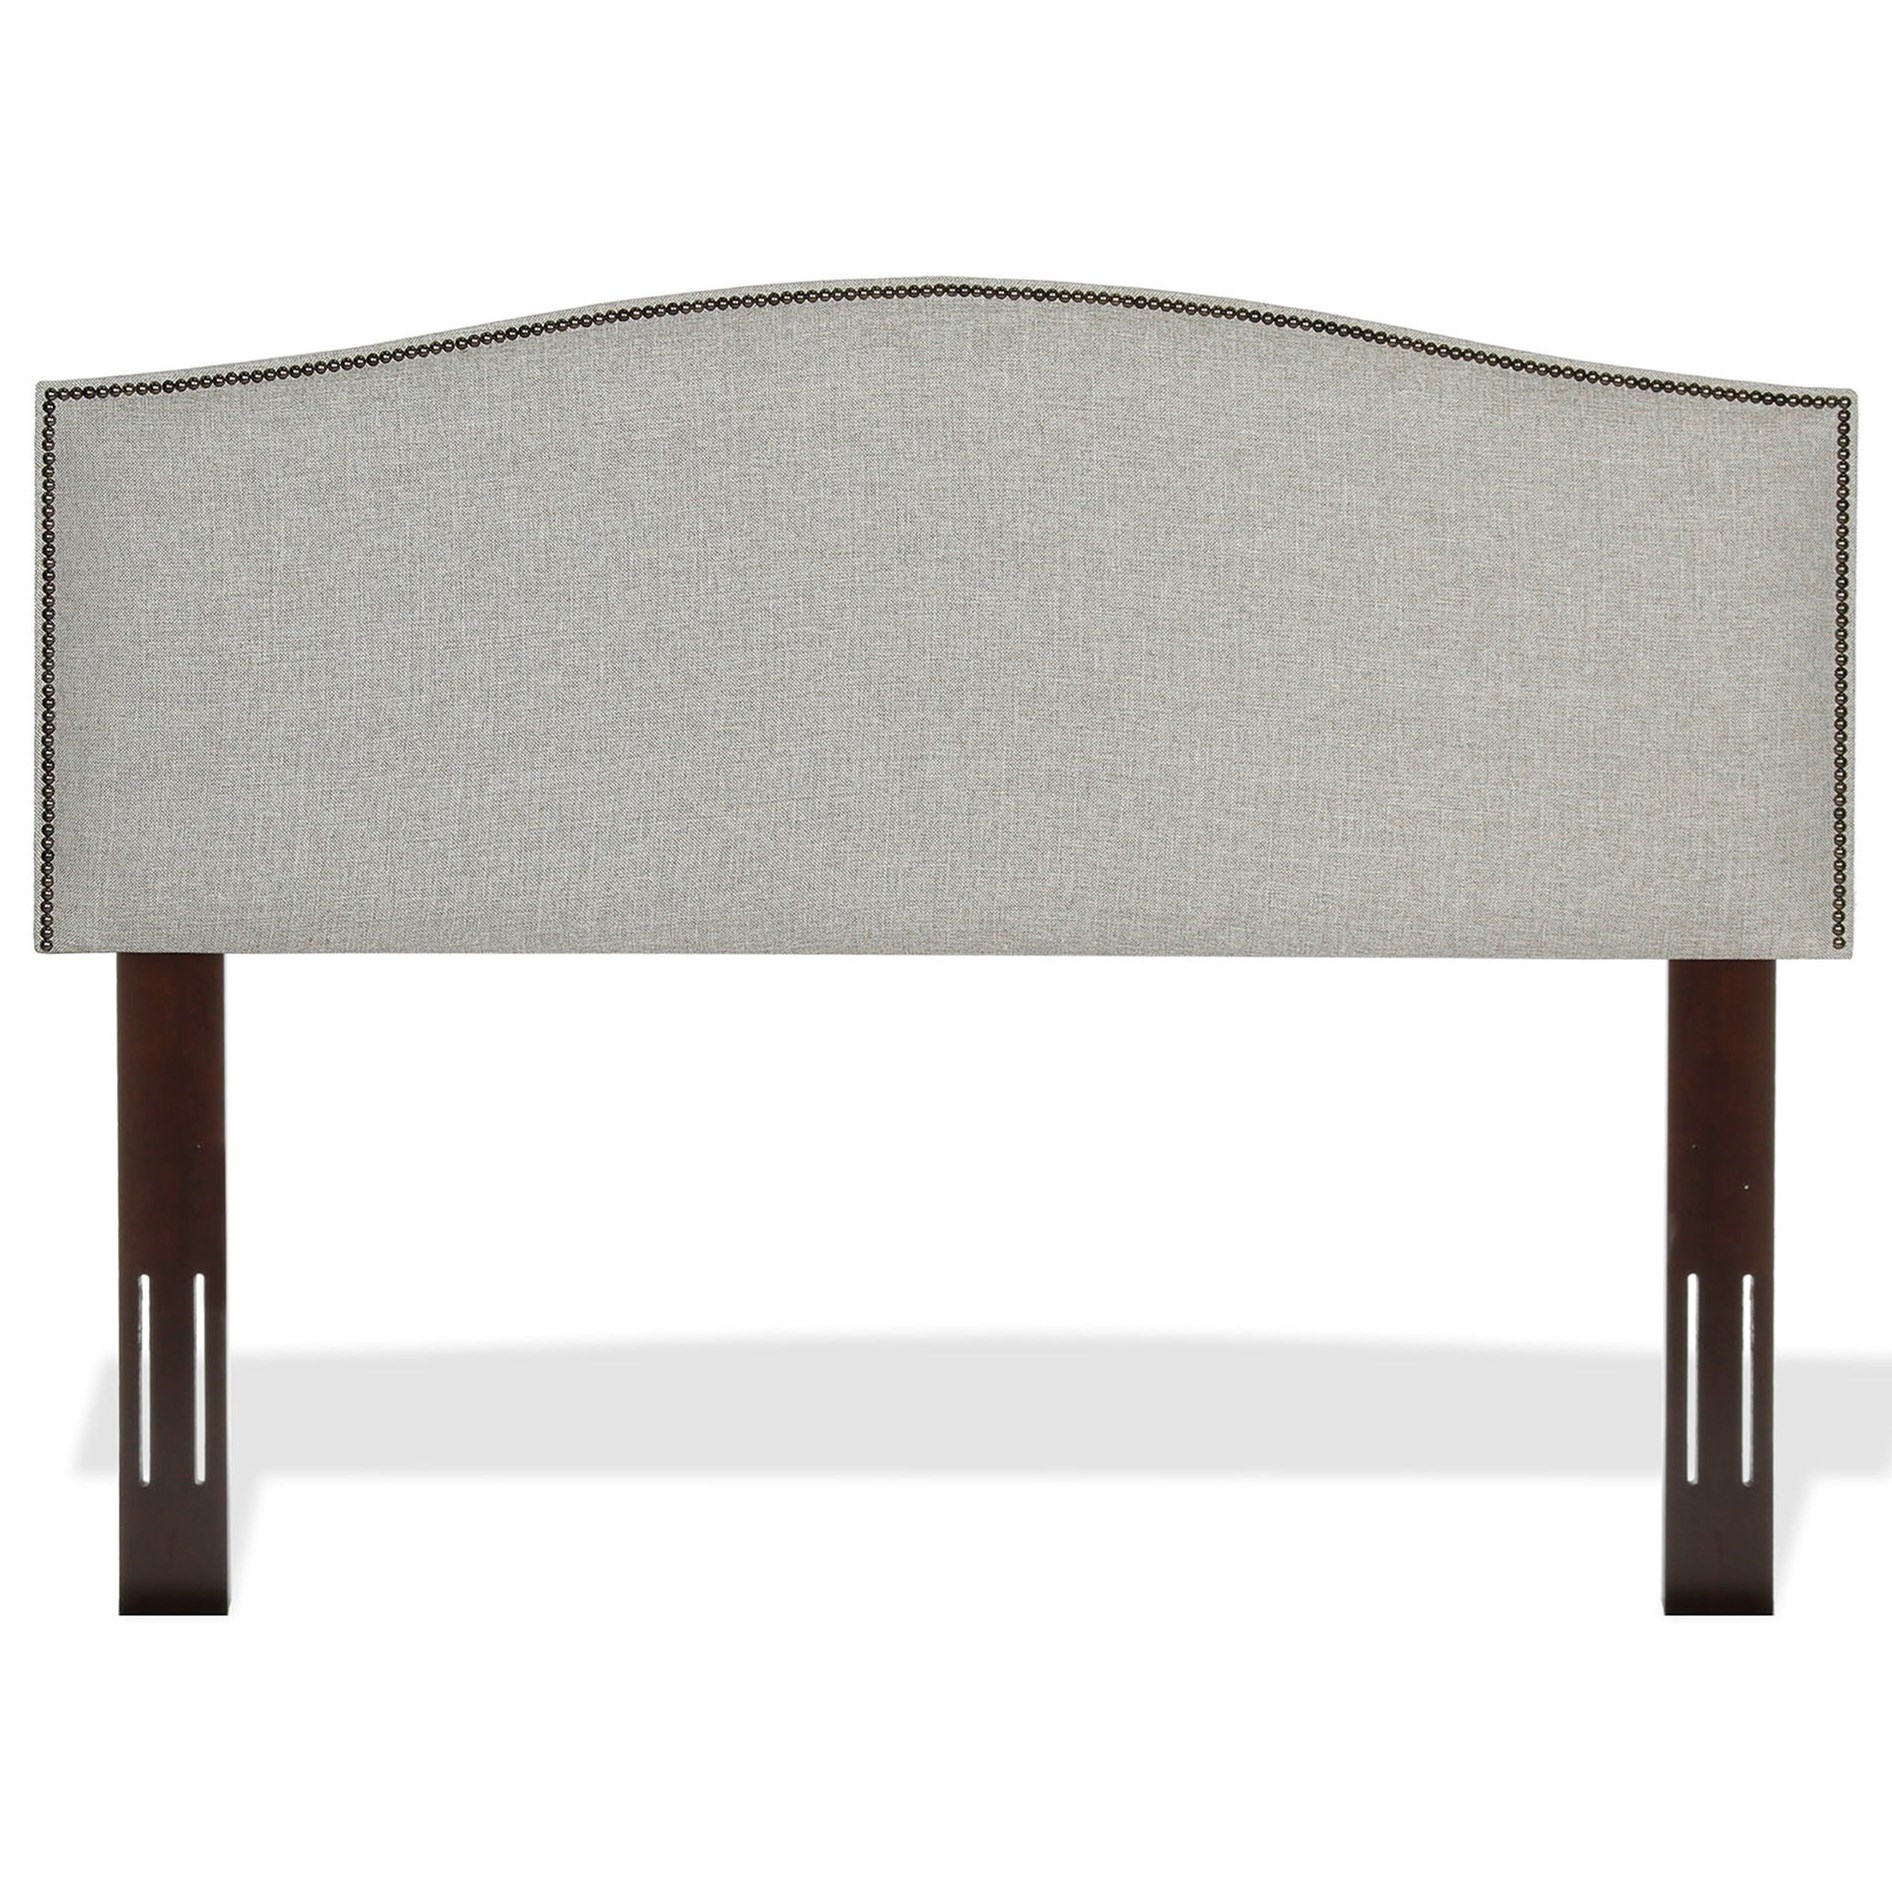 Fashion Bed Group Upholstered Full/Queen Headboard - Item Number: B72891